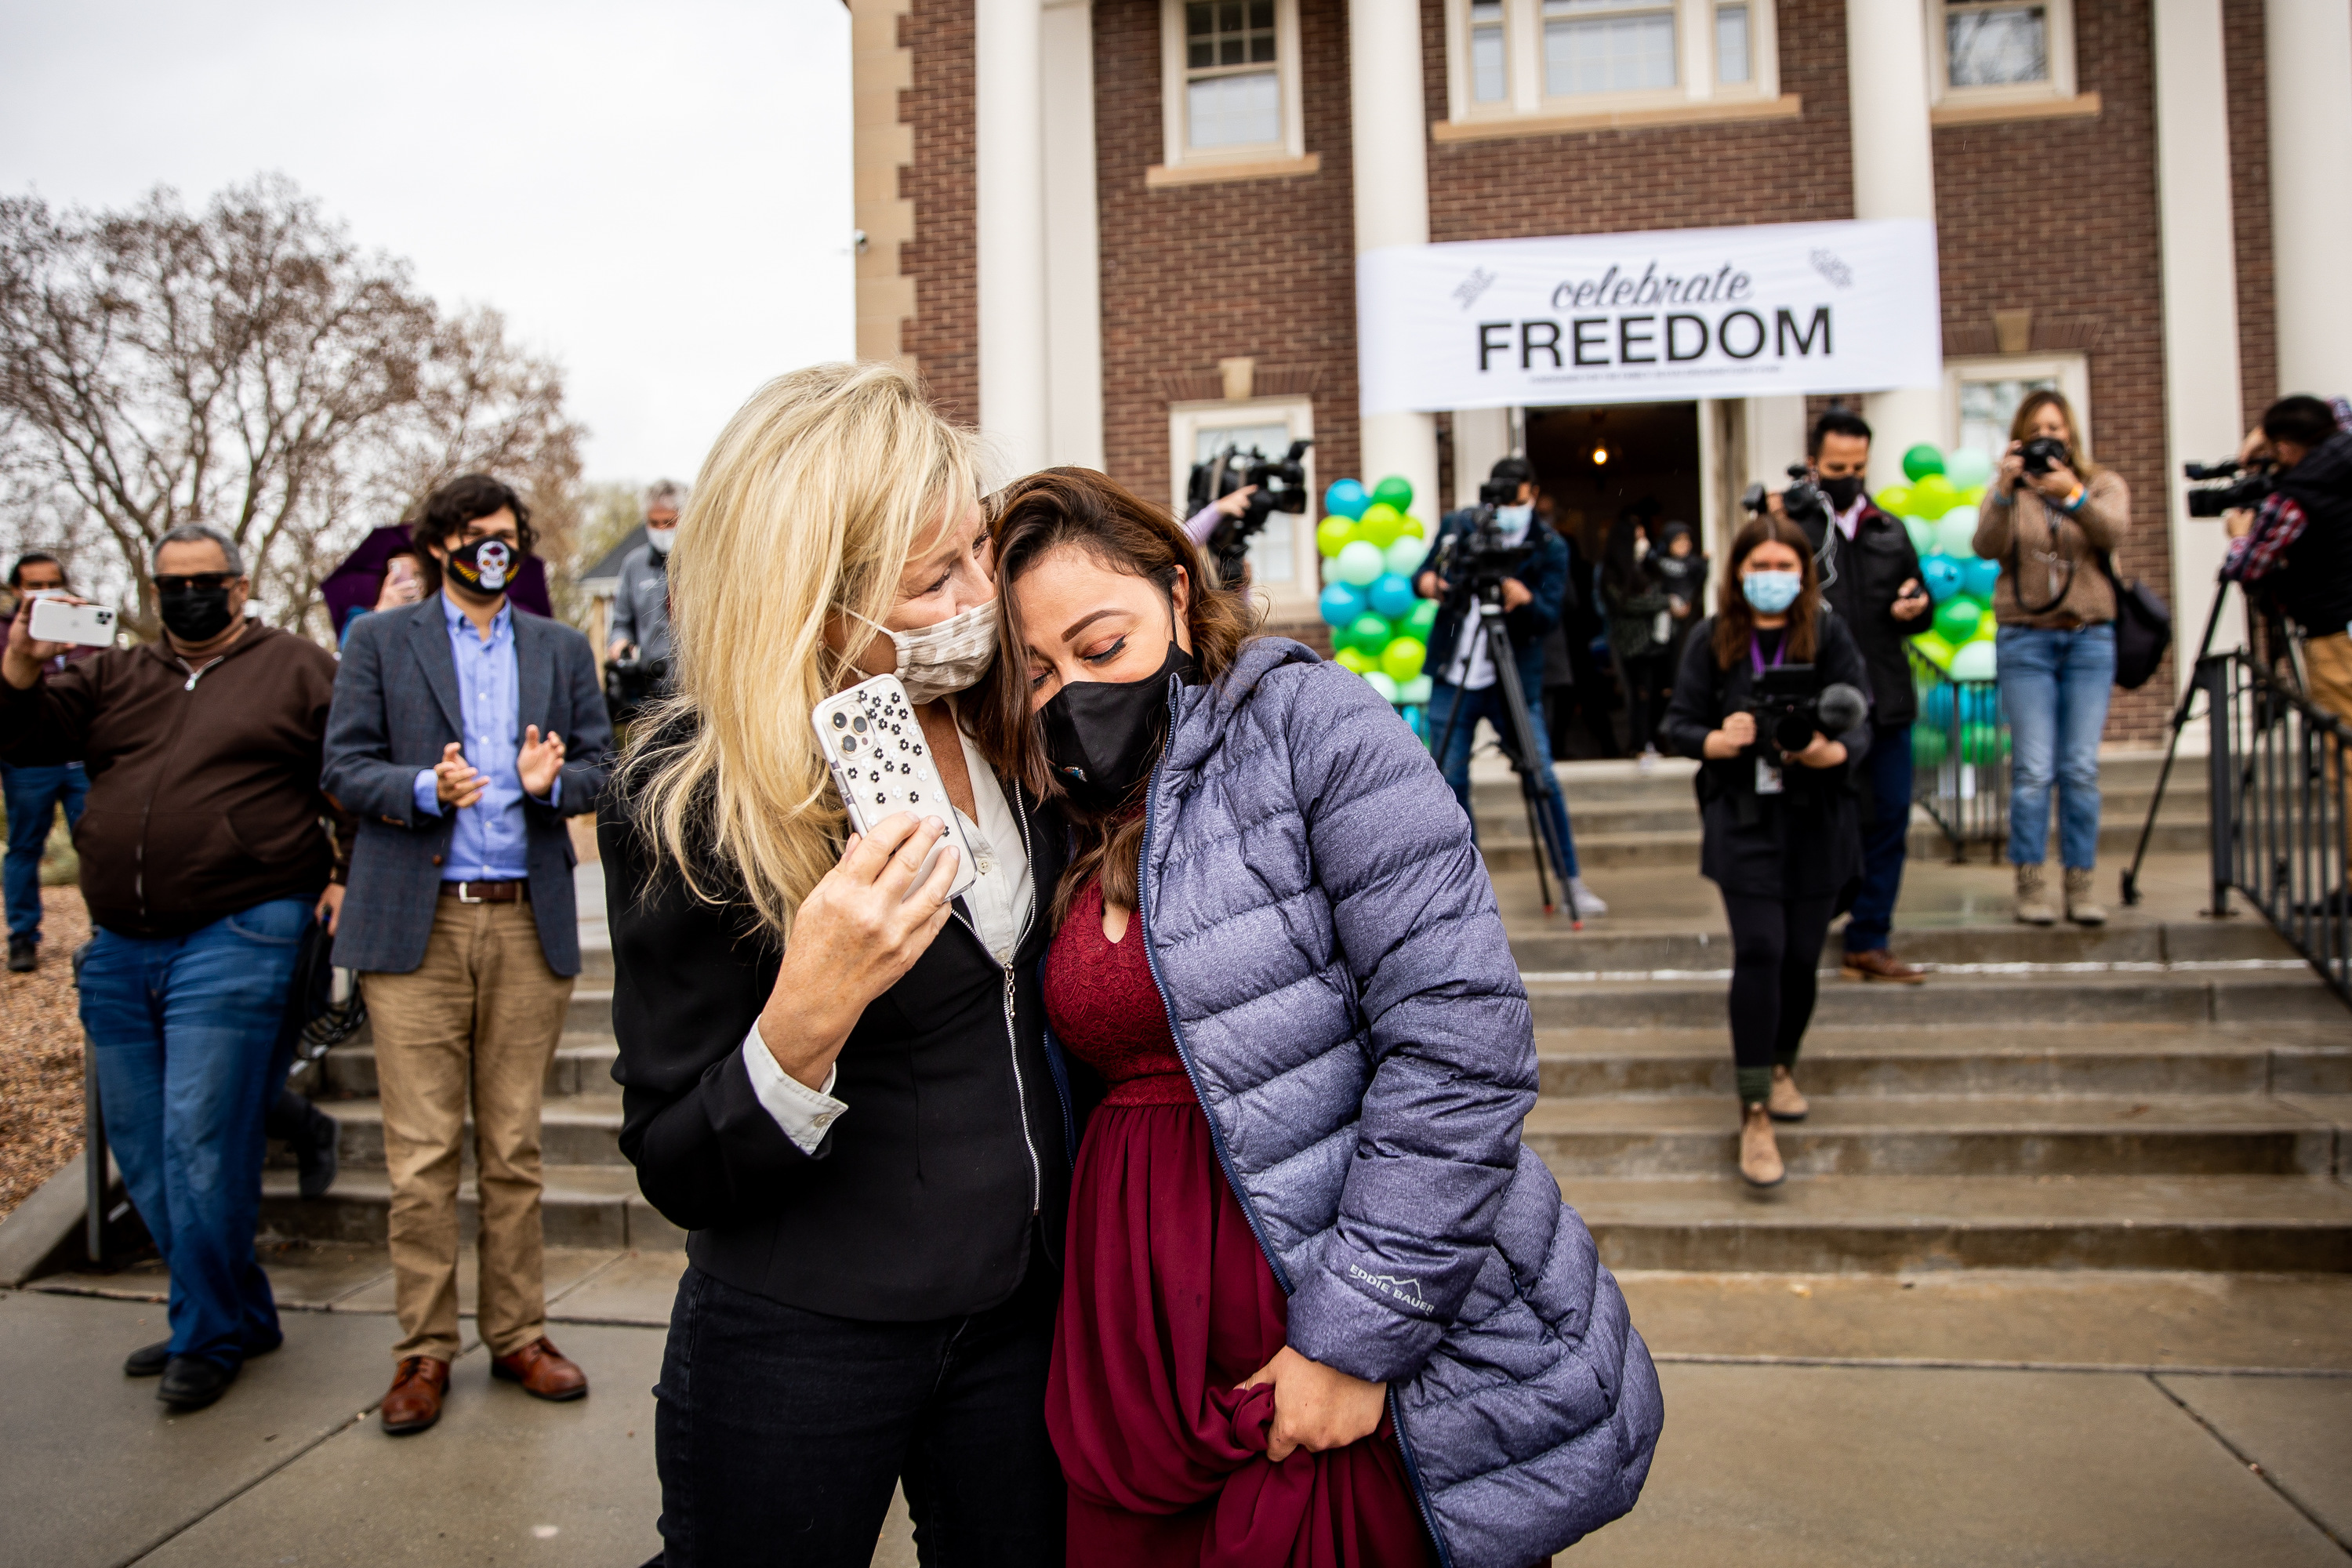 Vicky Chavez, right, embraces Lisa Hyte, a member of the sanctuary committee at the First Unitarian Church of Salt Lake City, as Chavez leaves the church on Thursday, April 15, 2021. Chavez has received a one-year stay of removal after spending more than three years living in sanctuary inside the church.